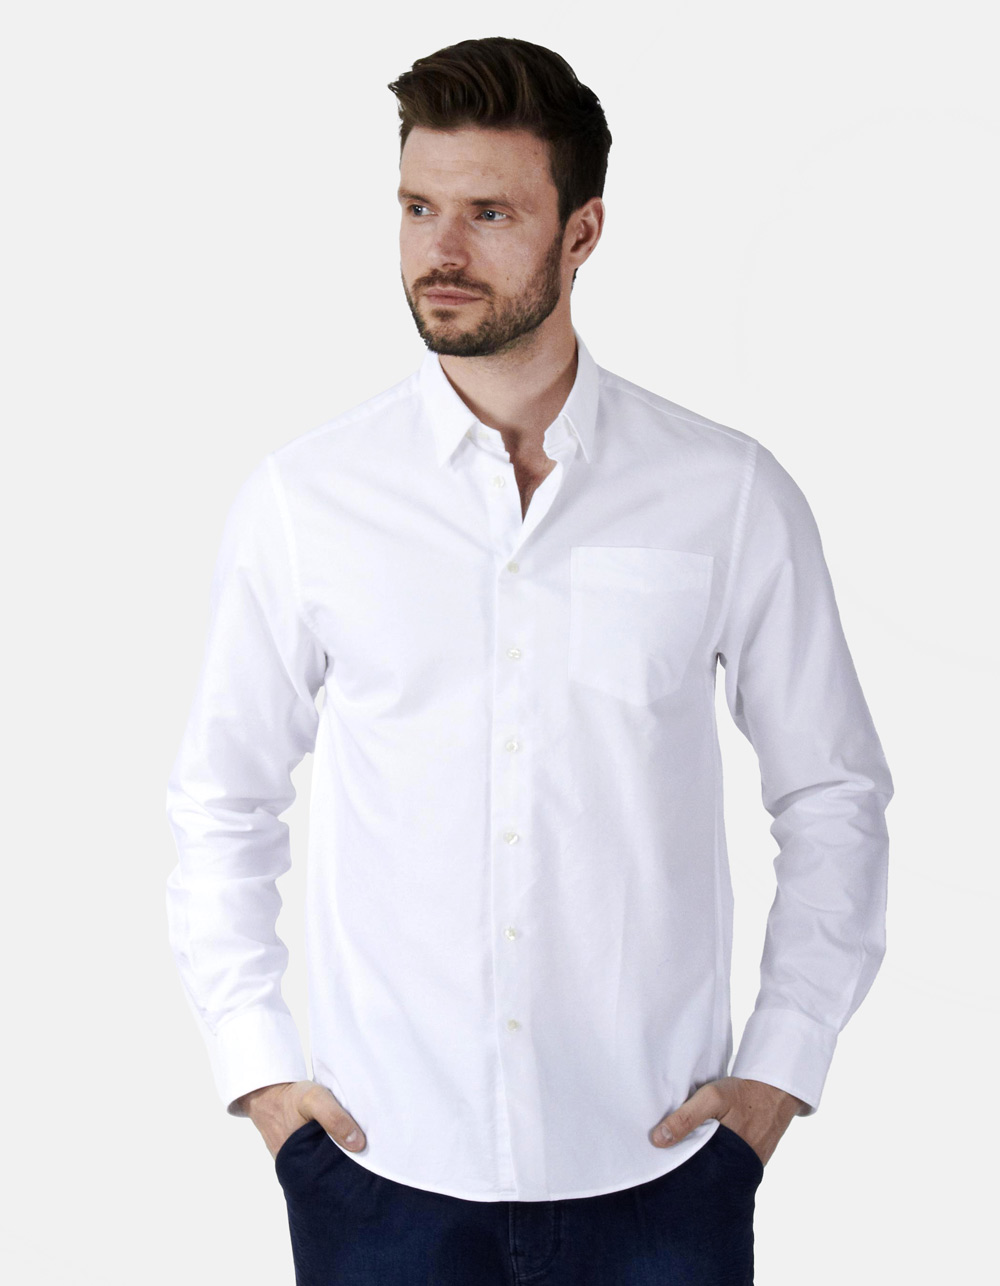 White Oxford plain shirt